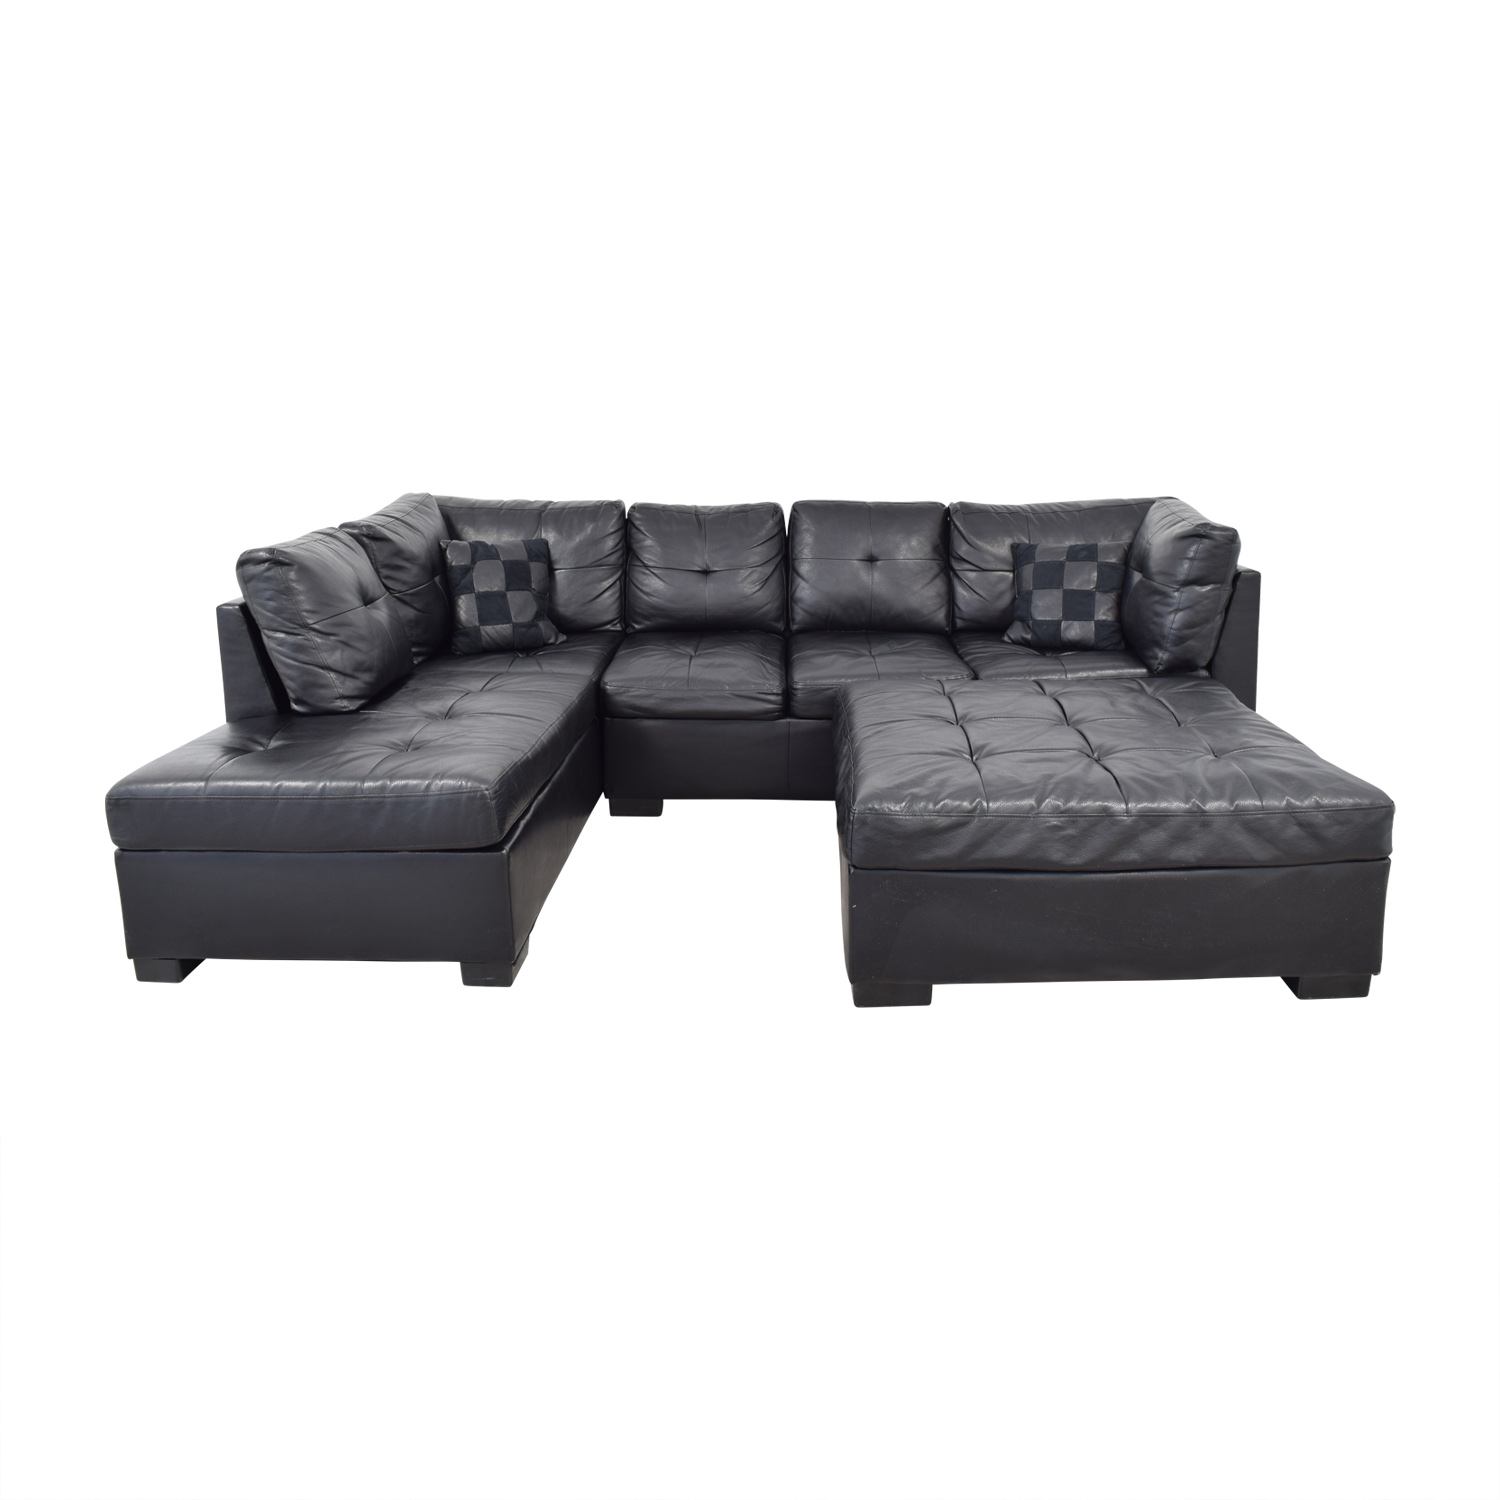 Coaster Fine Furniture Coaster Fine Furniture Black Tufted  Chaise Sectional with Ottoman discount